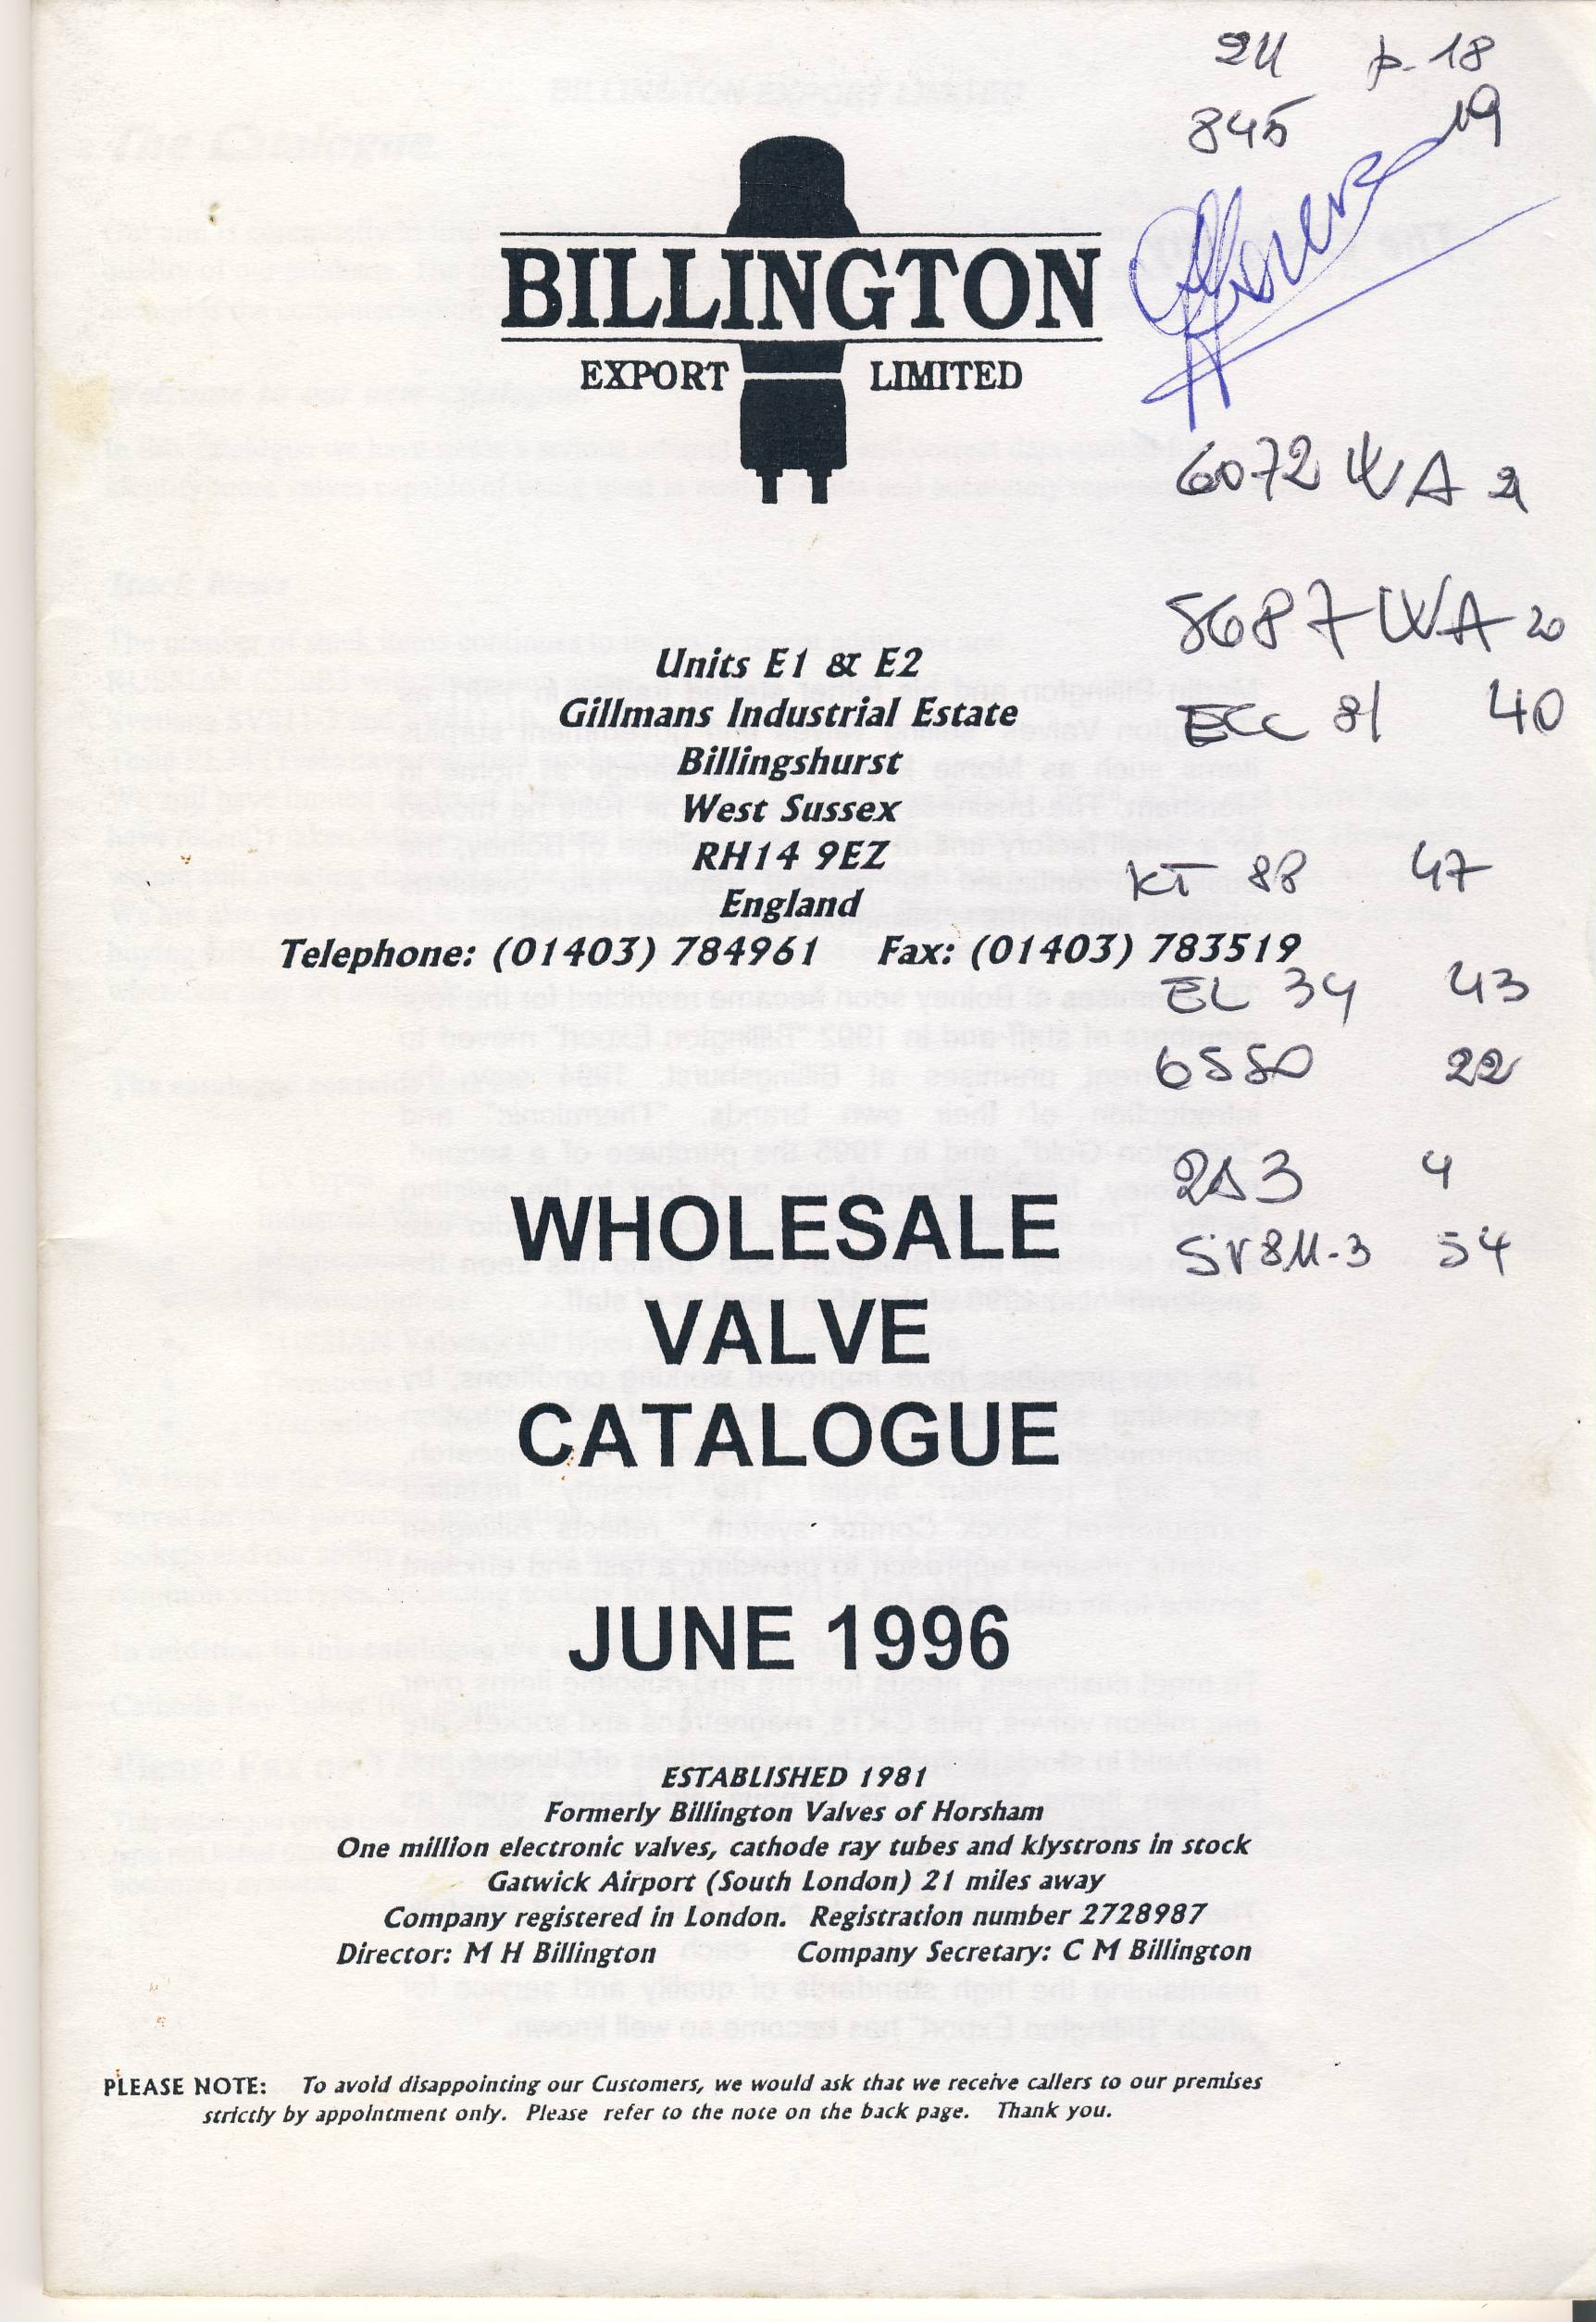 BILLINGTON EXPORT 1996 Wholesale Valve Catalogue 68 pages measures approx 21cm x 15cm ref101630 June 1996 Catalogue pre-owned in good read condition. Writing on cover.